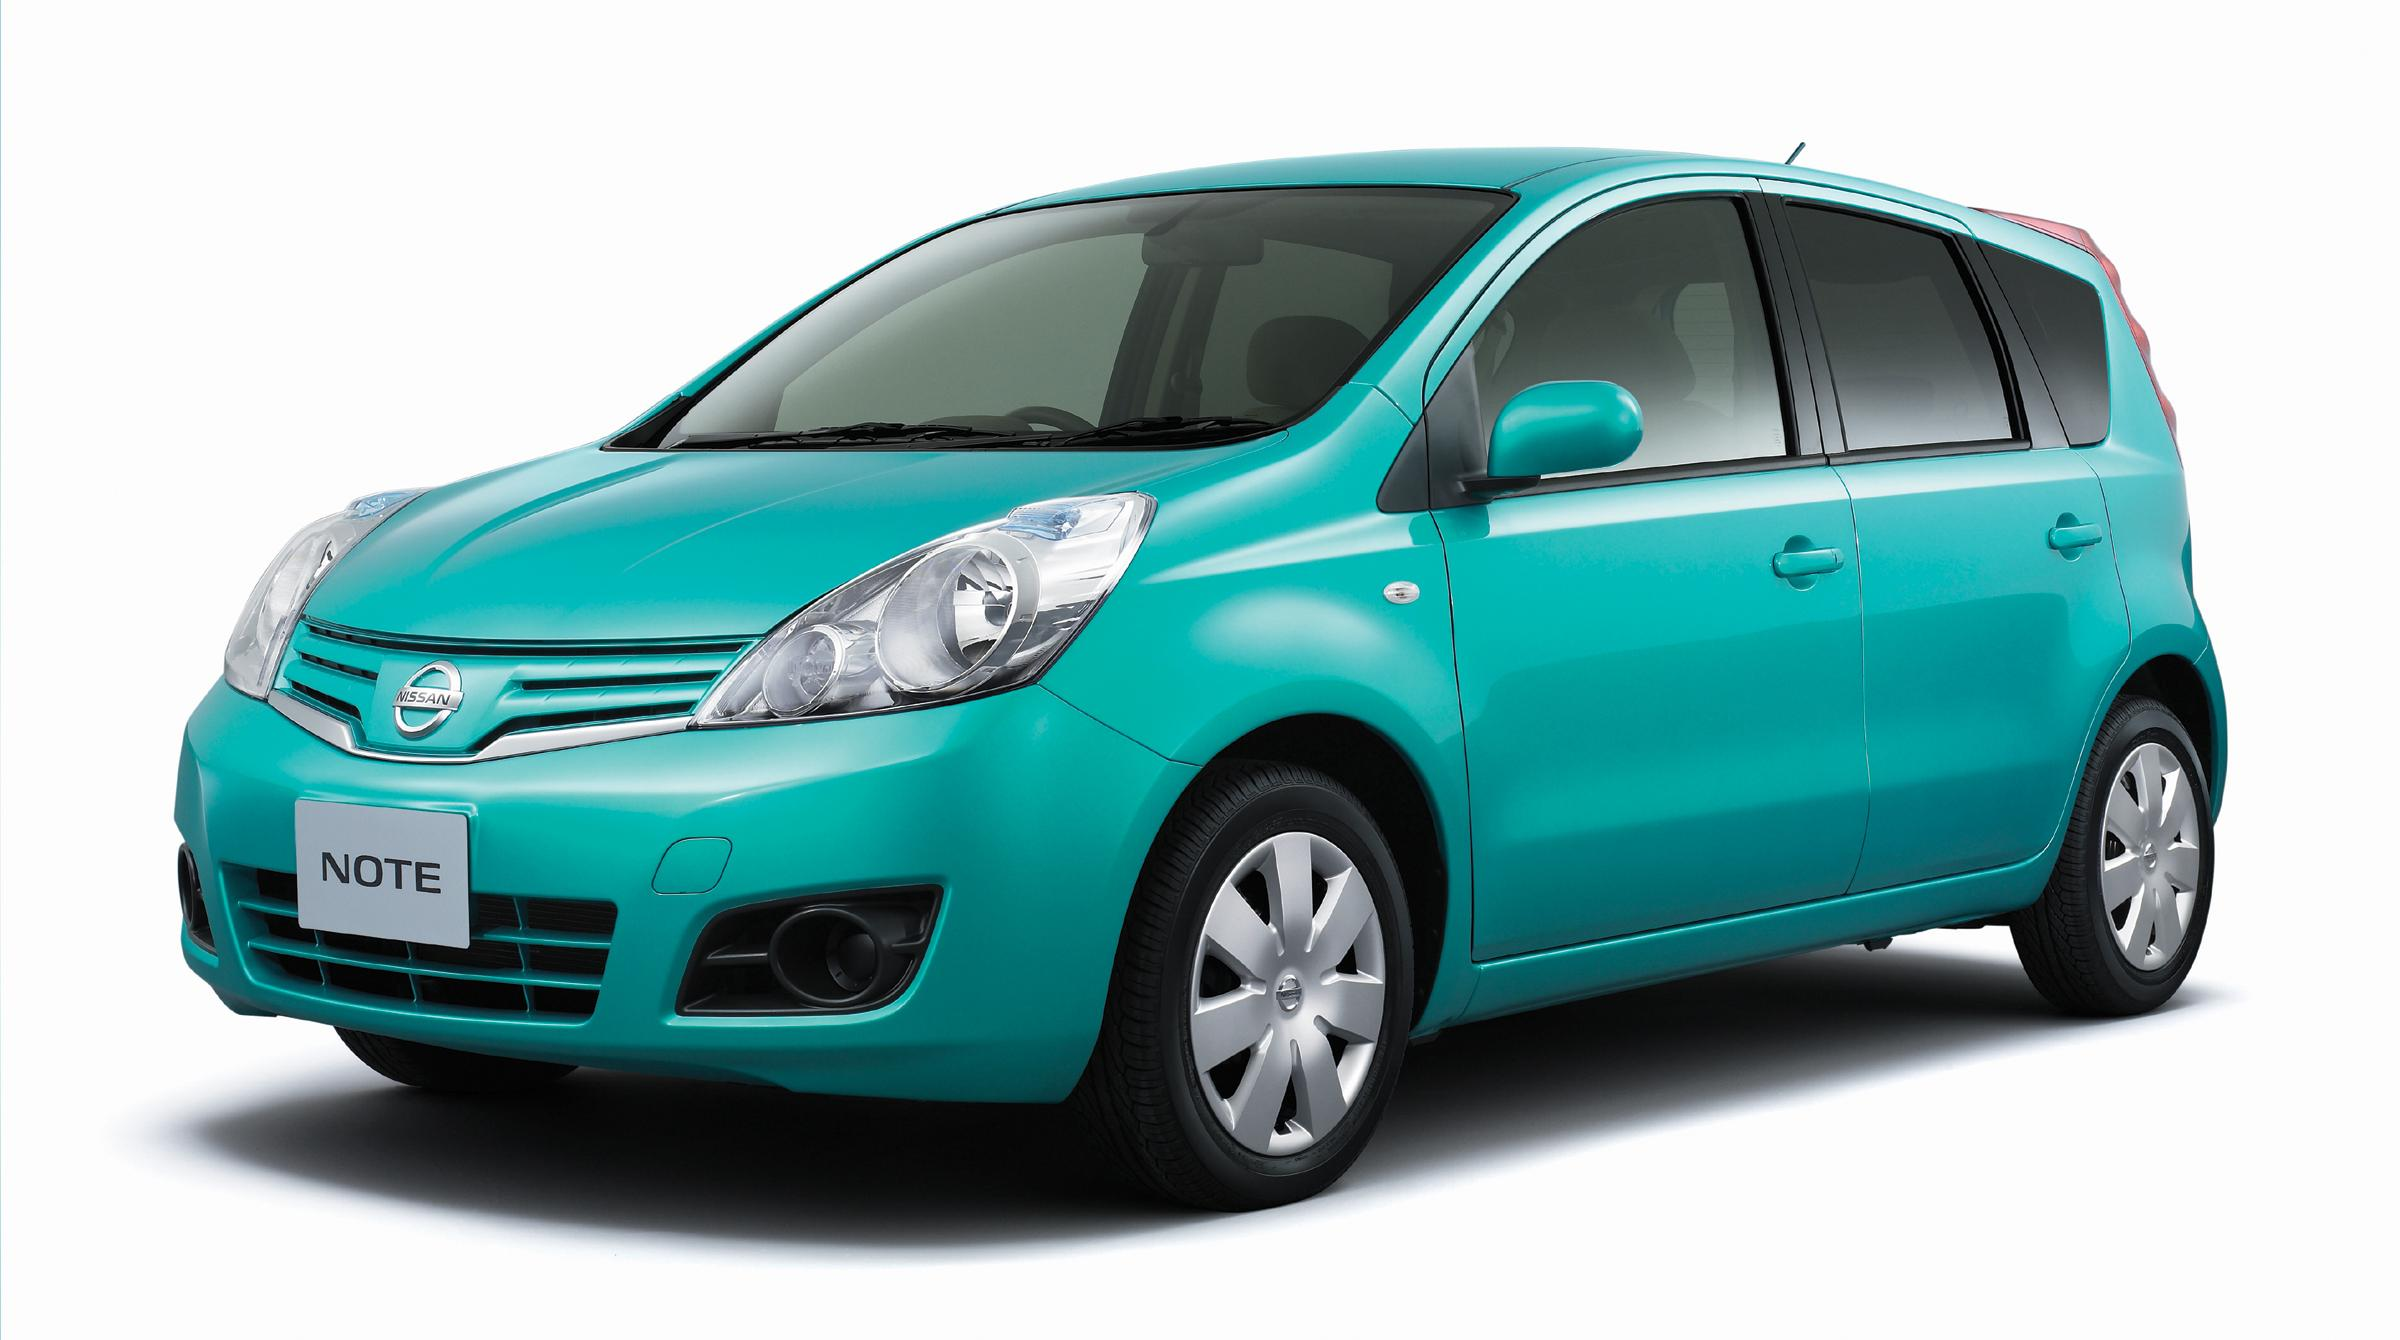 2008 Nissan Note | Top Speed